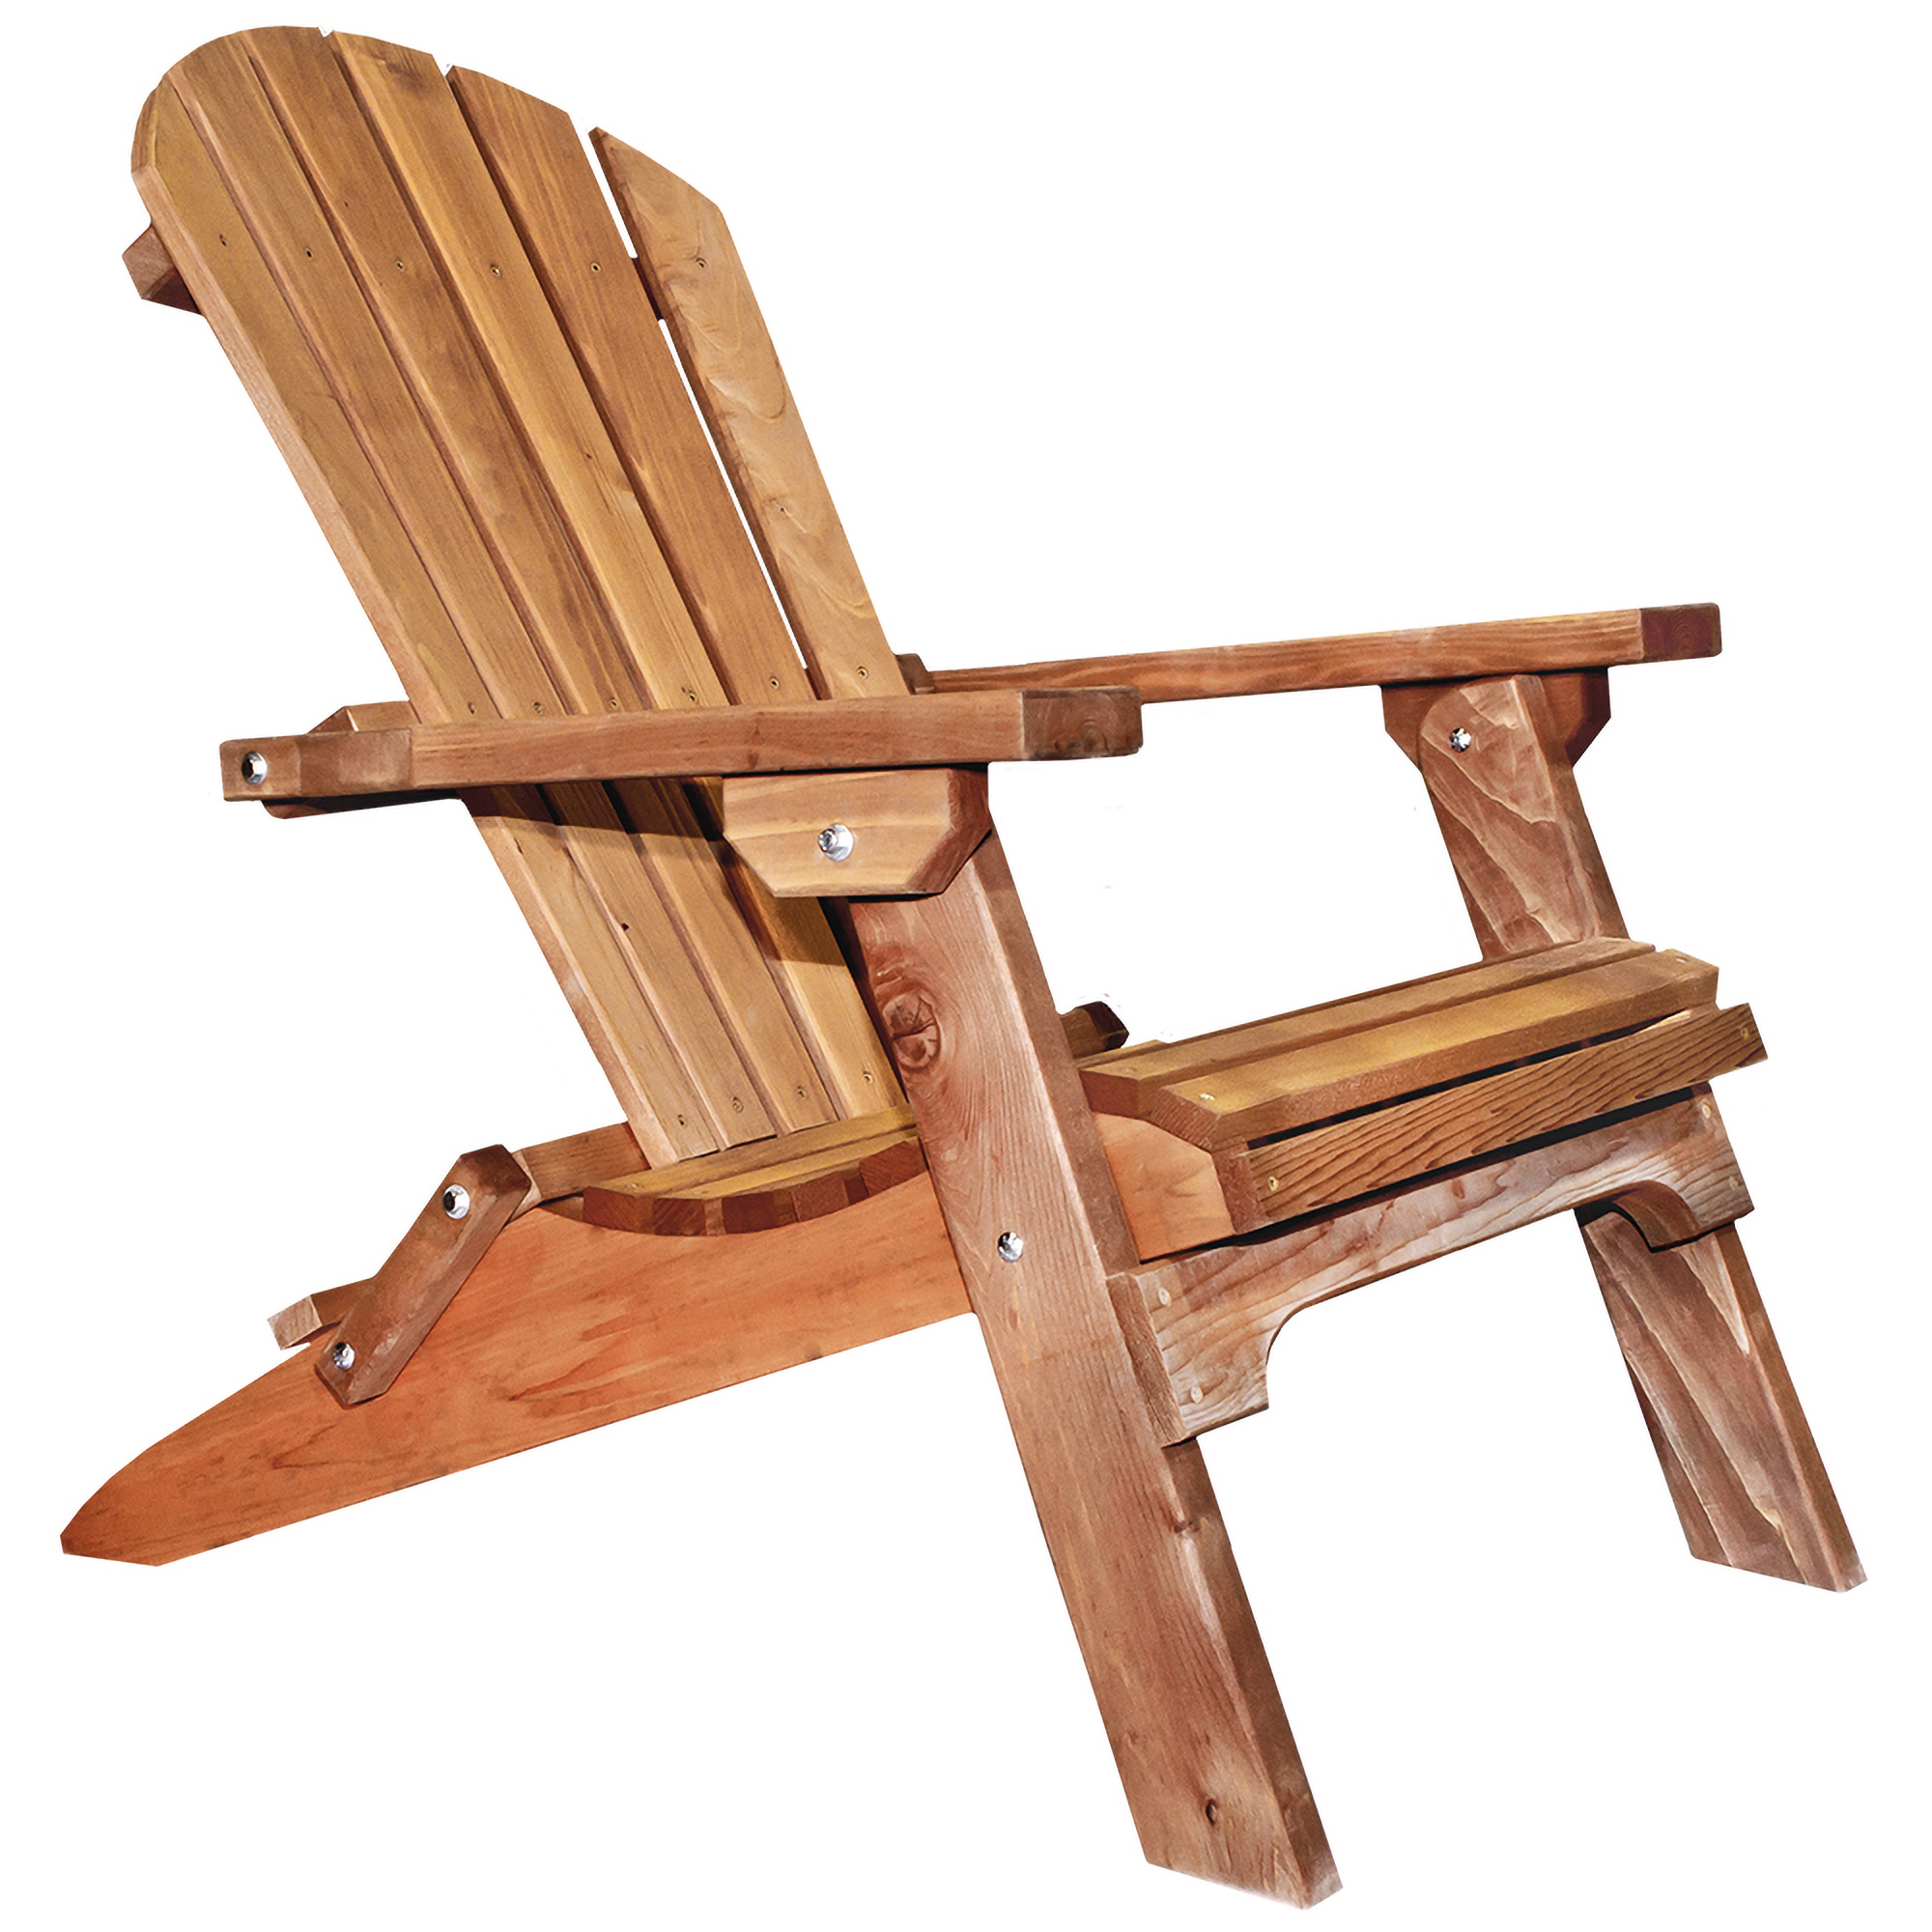 Western Red Cedar Adirondack Chair, Exterior Stain Finish